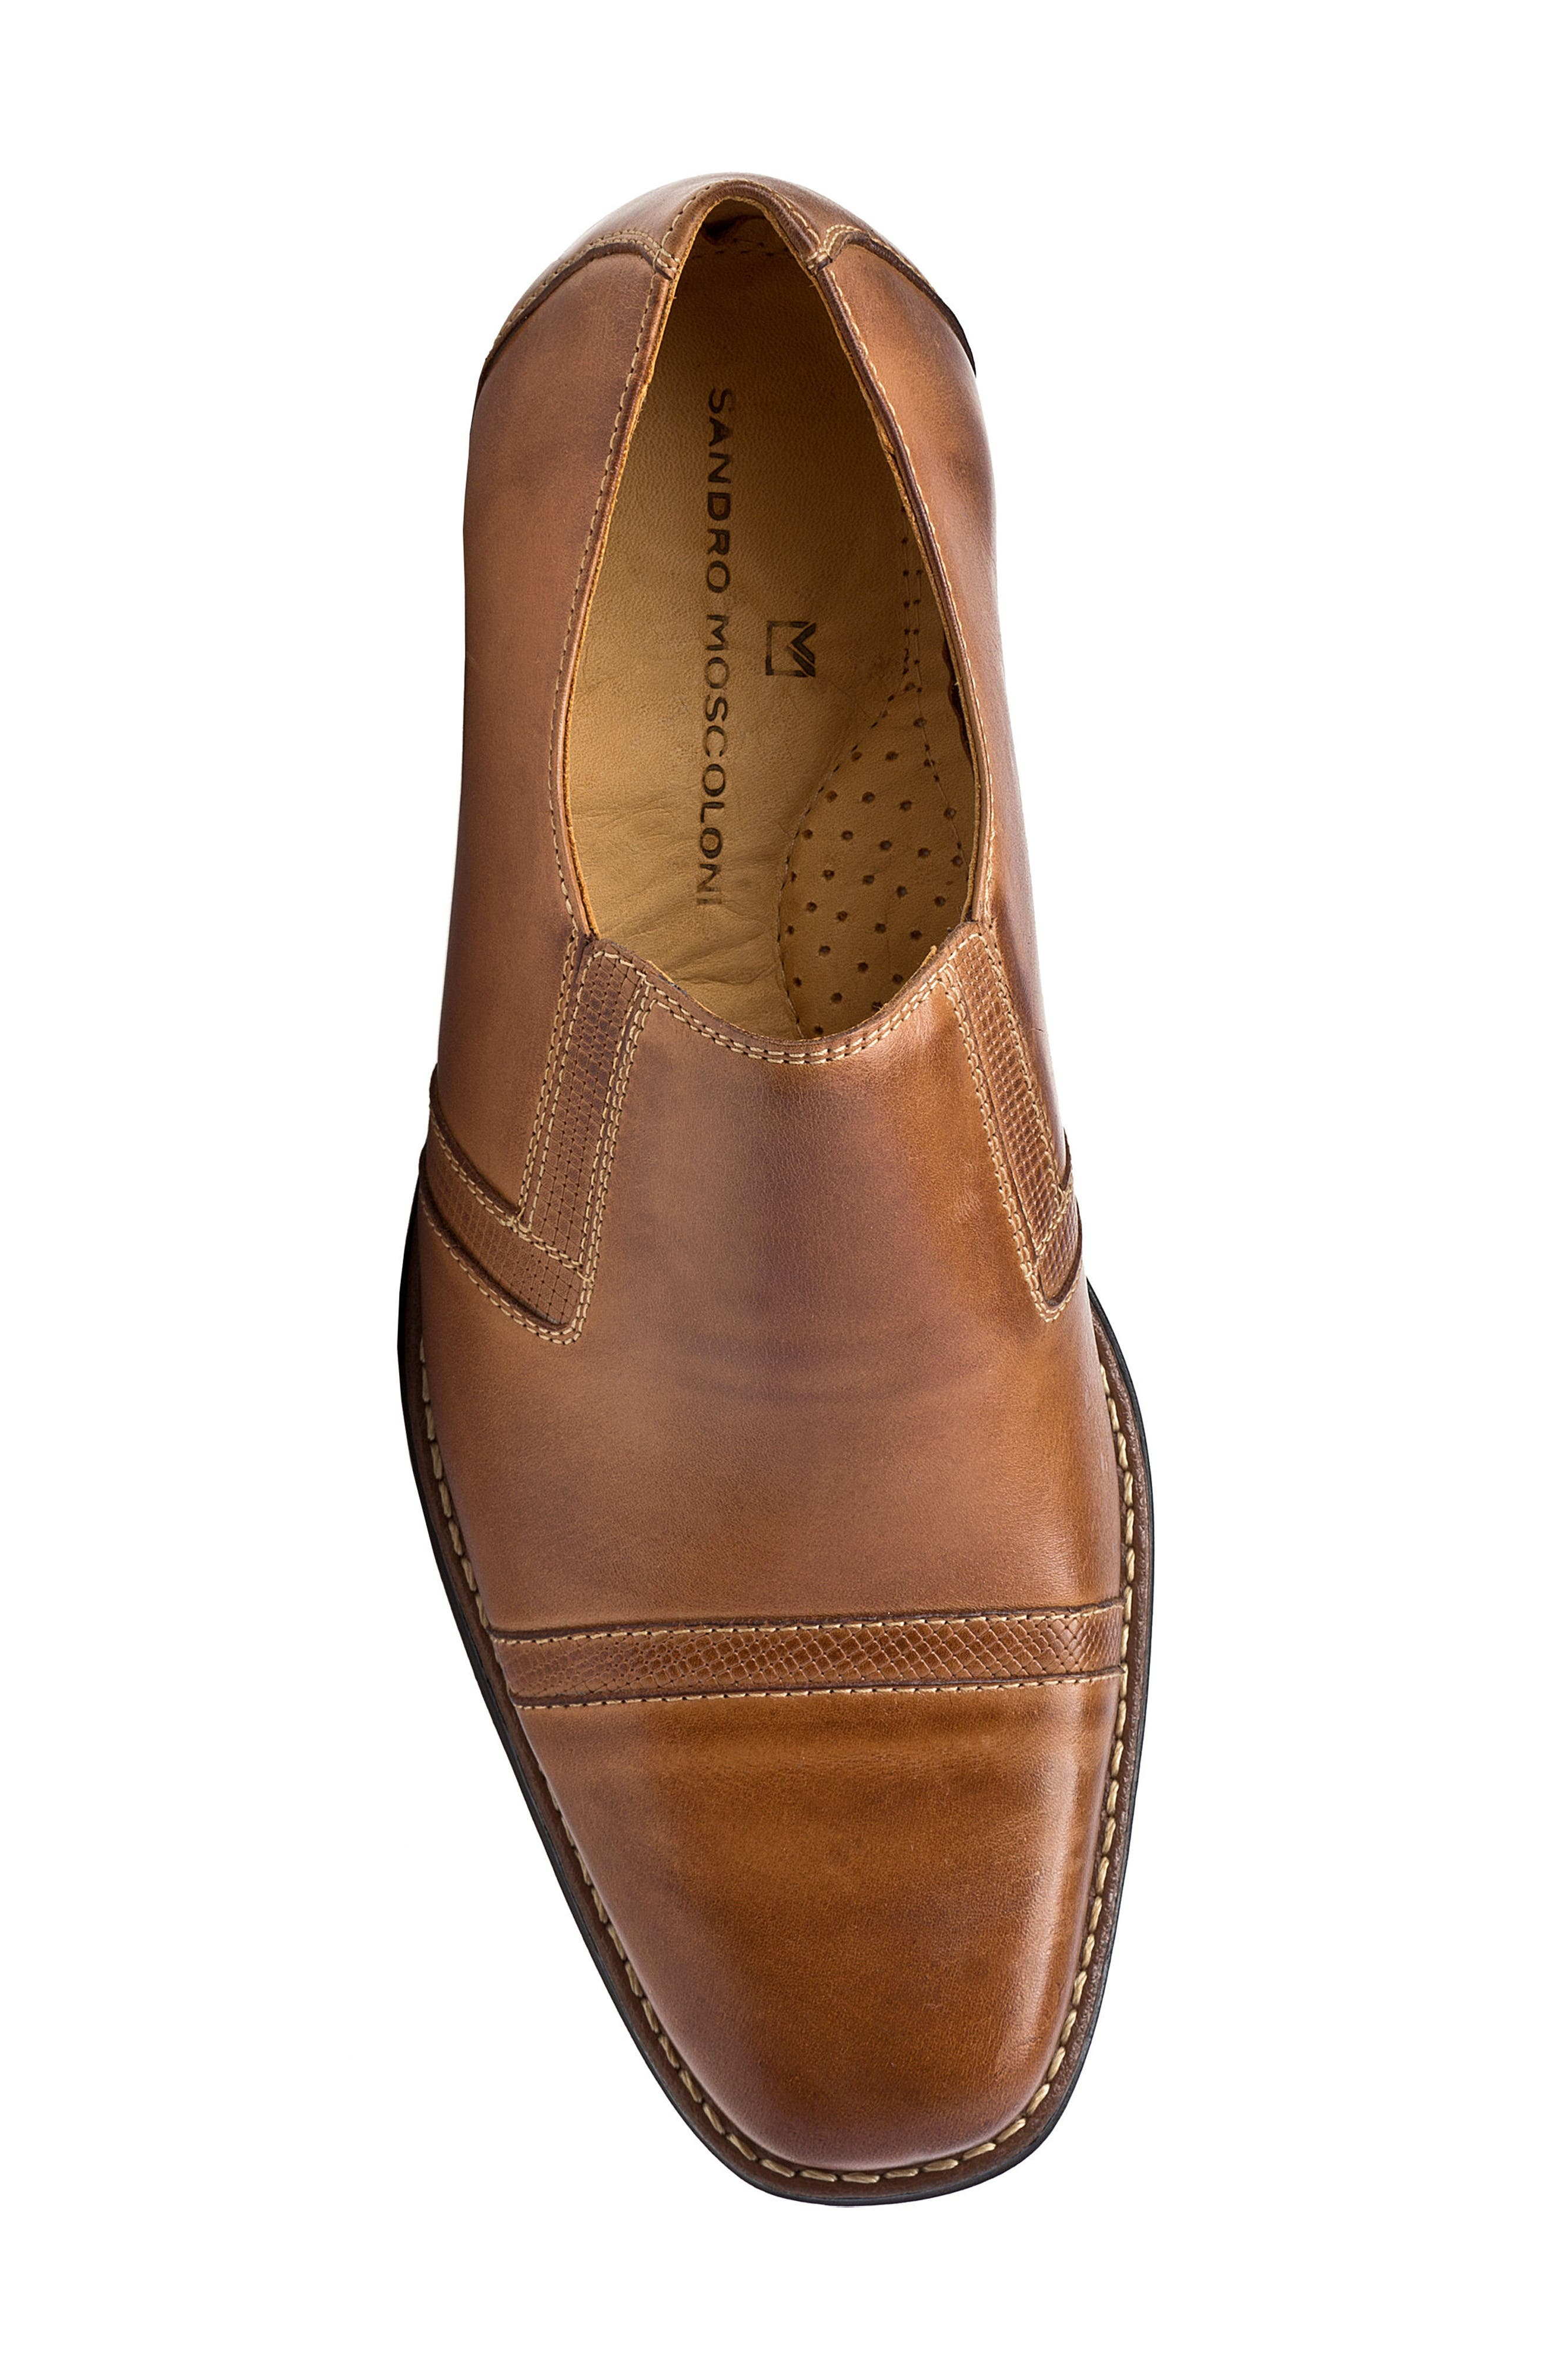 Sebastian Venetian Loafer,                             Alternate thumbnail 5, color,                             TAN LEATHER